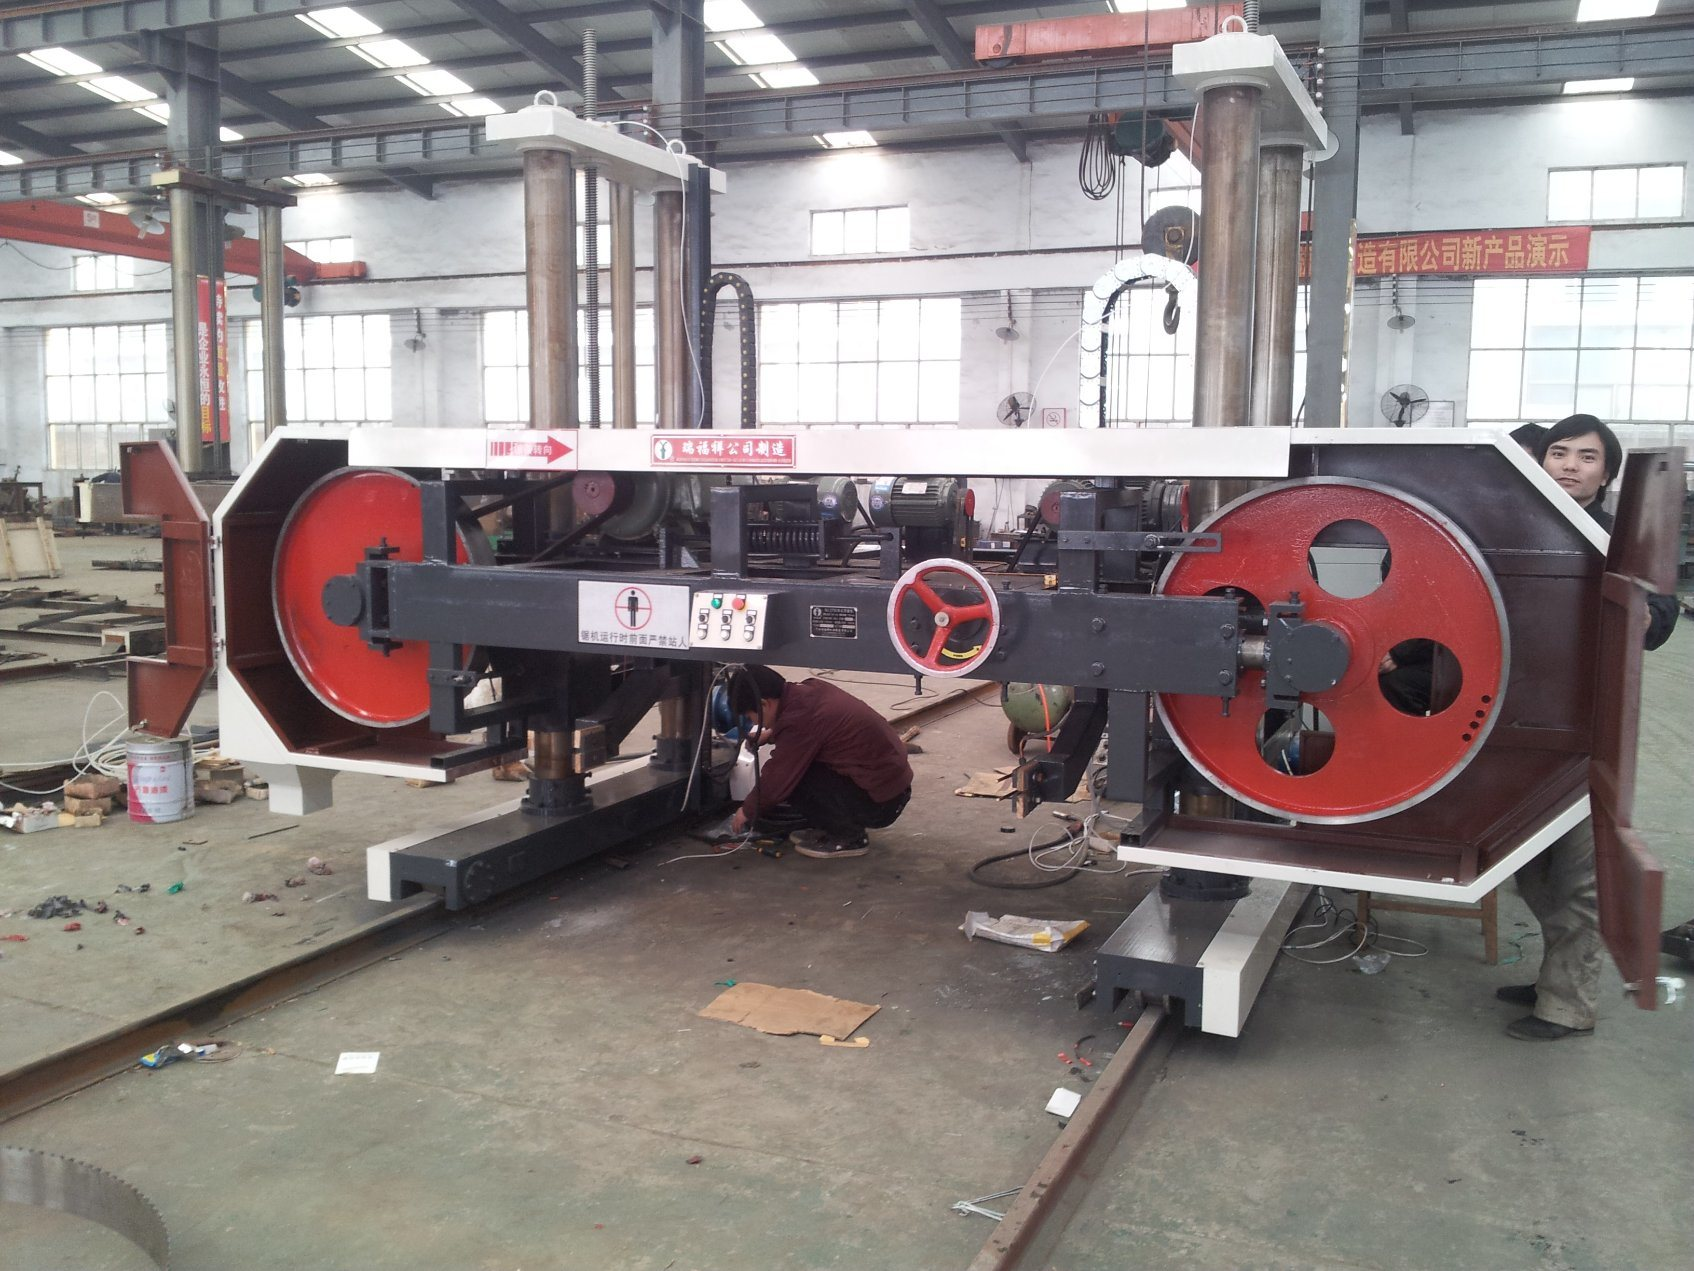 42 Inch Used Sawmills for Sale Mj3710